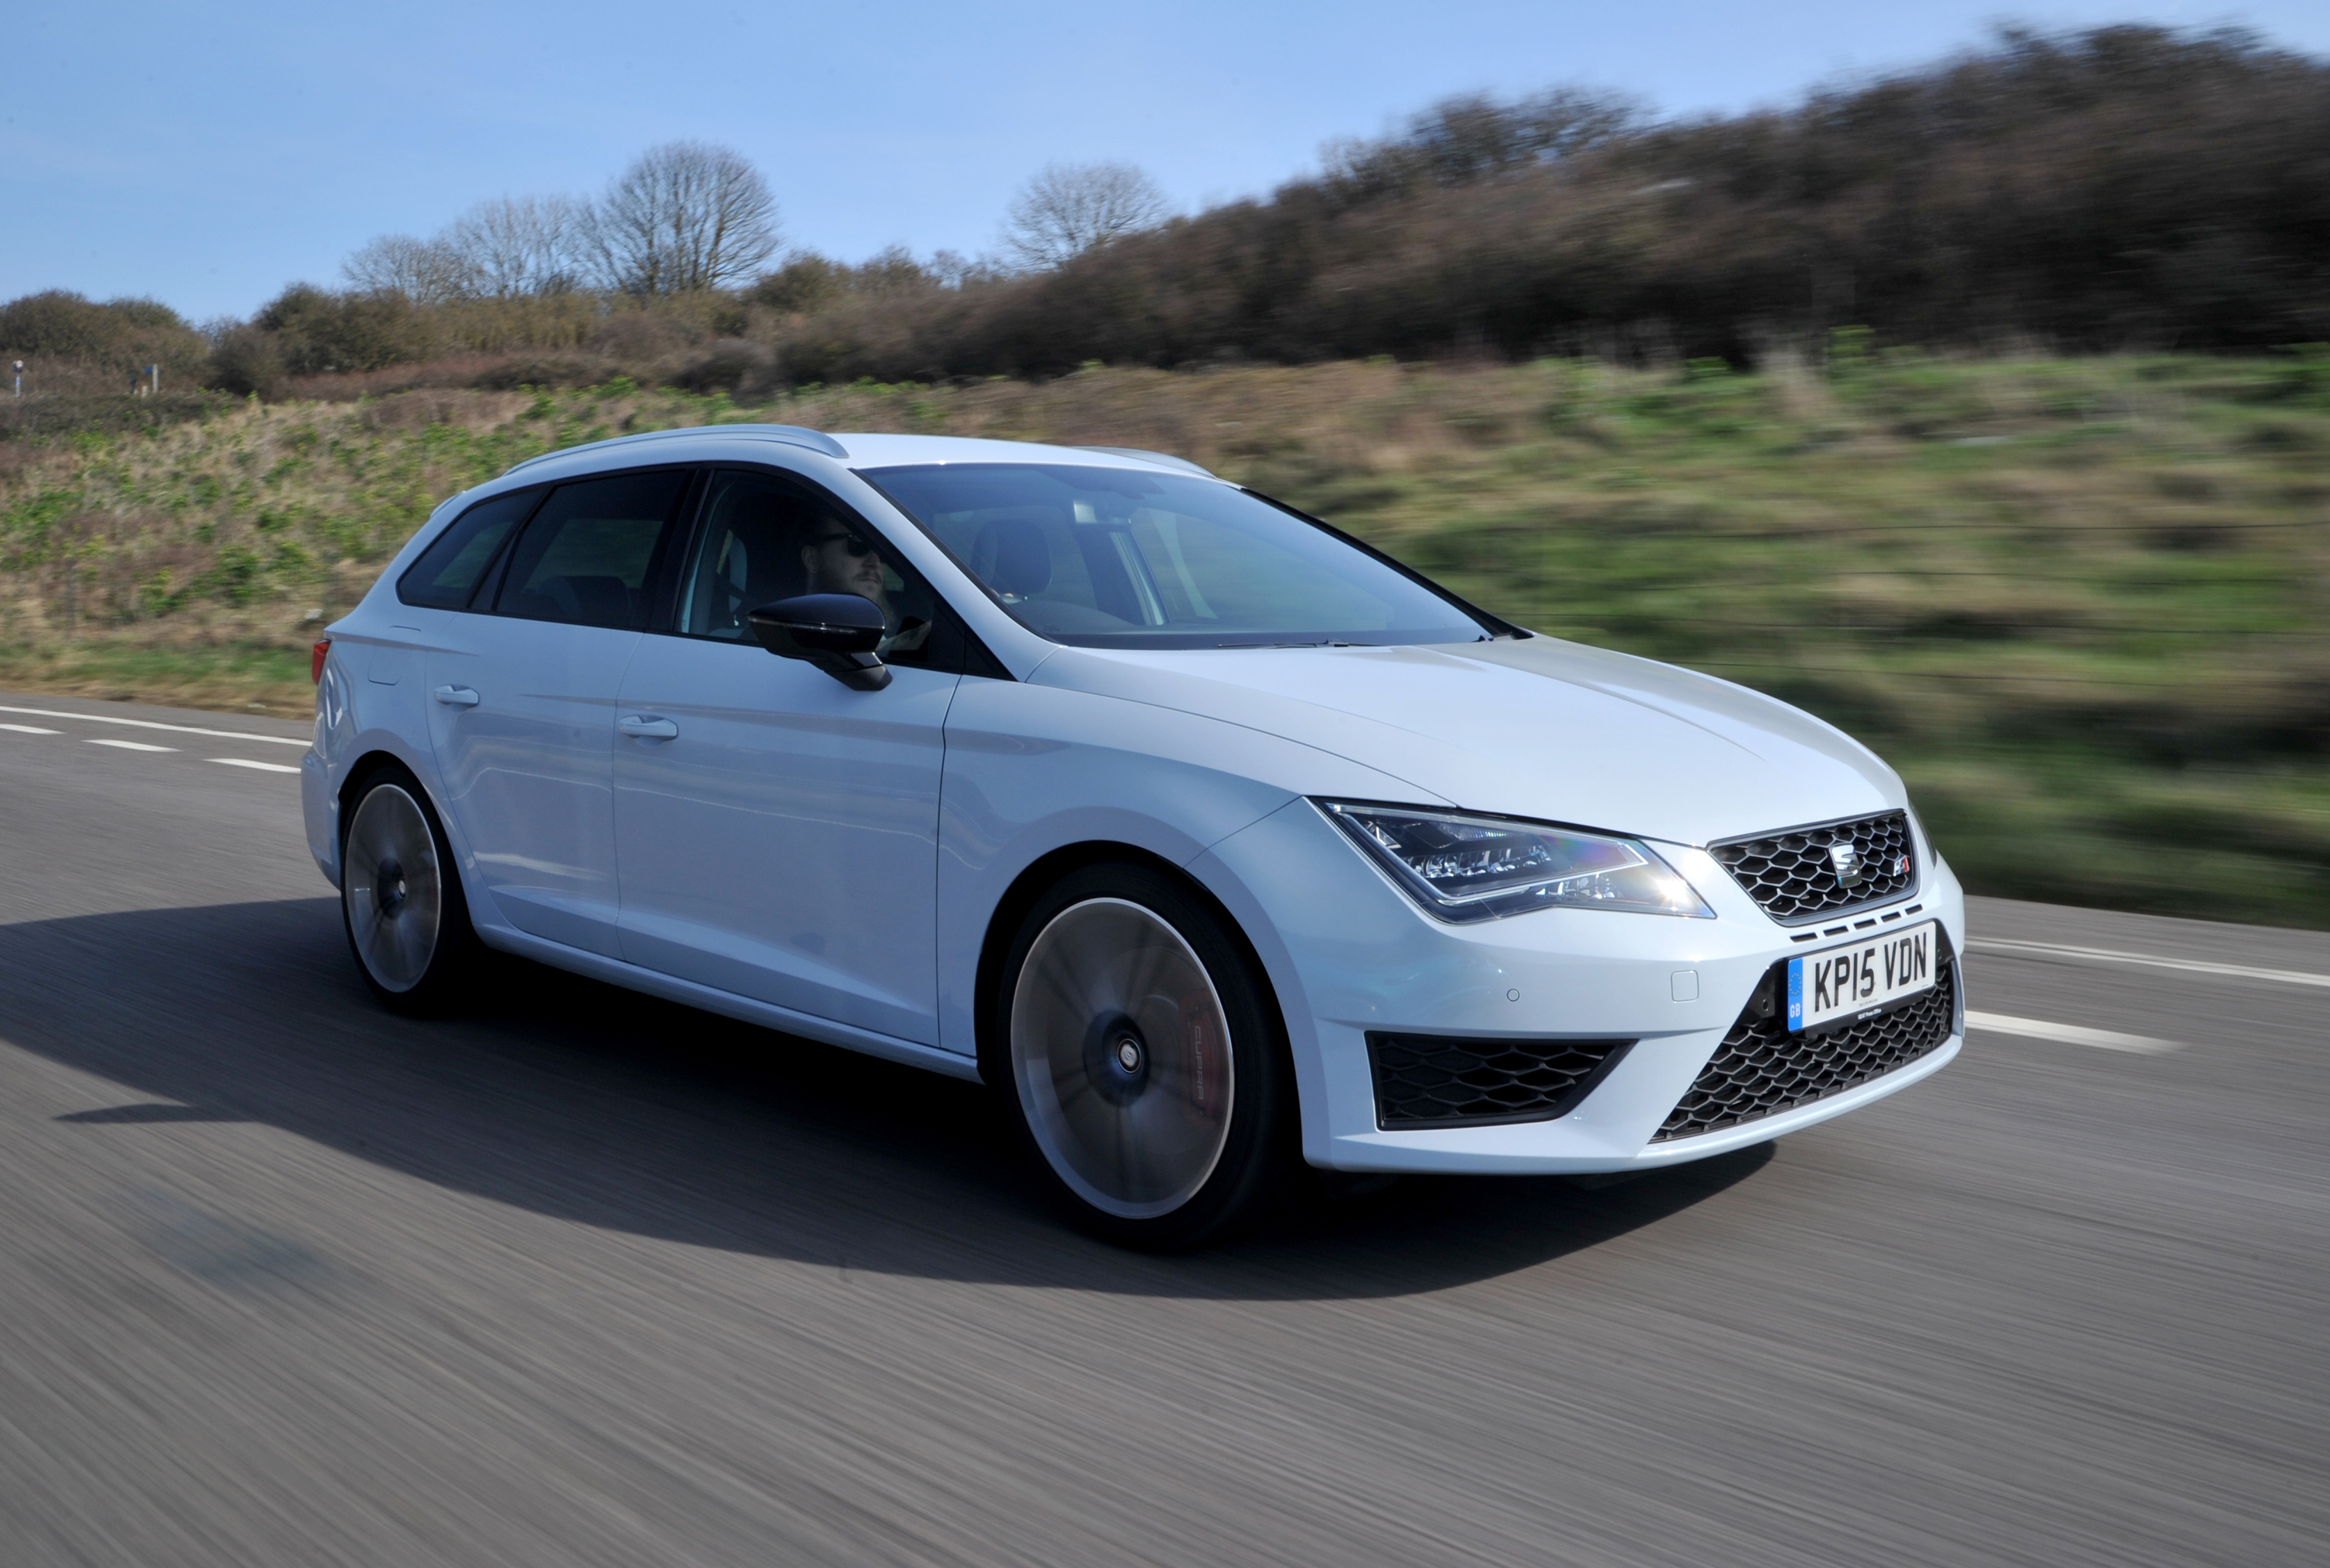 2019 Seat Ibiza Cupra | Car Photos Catalog 2019